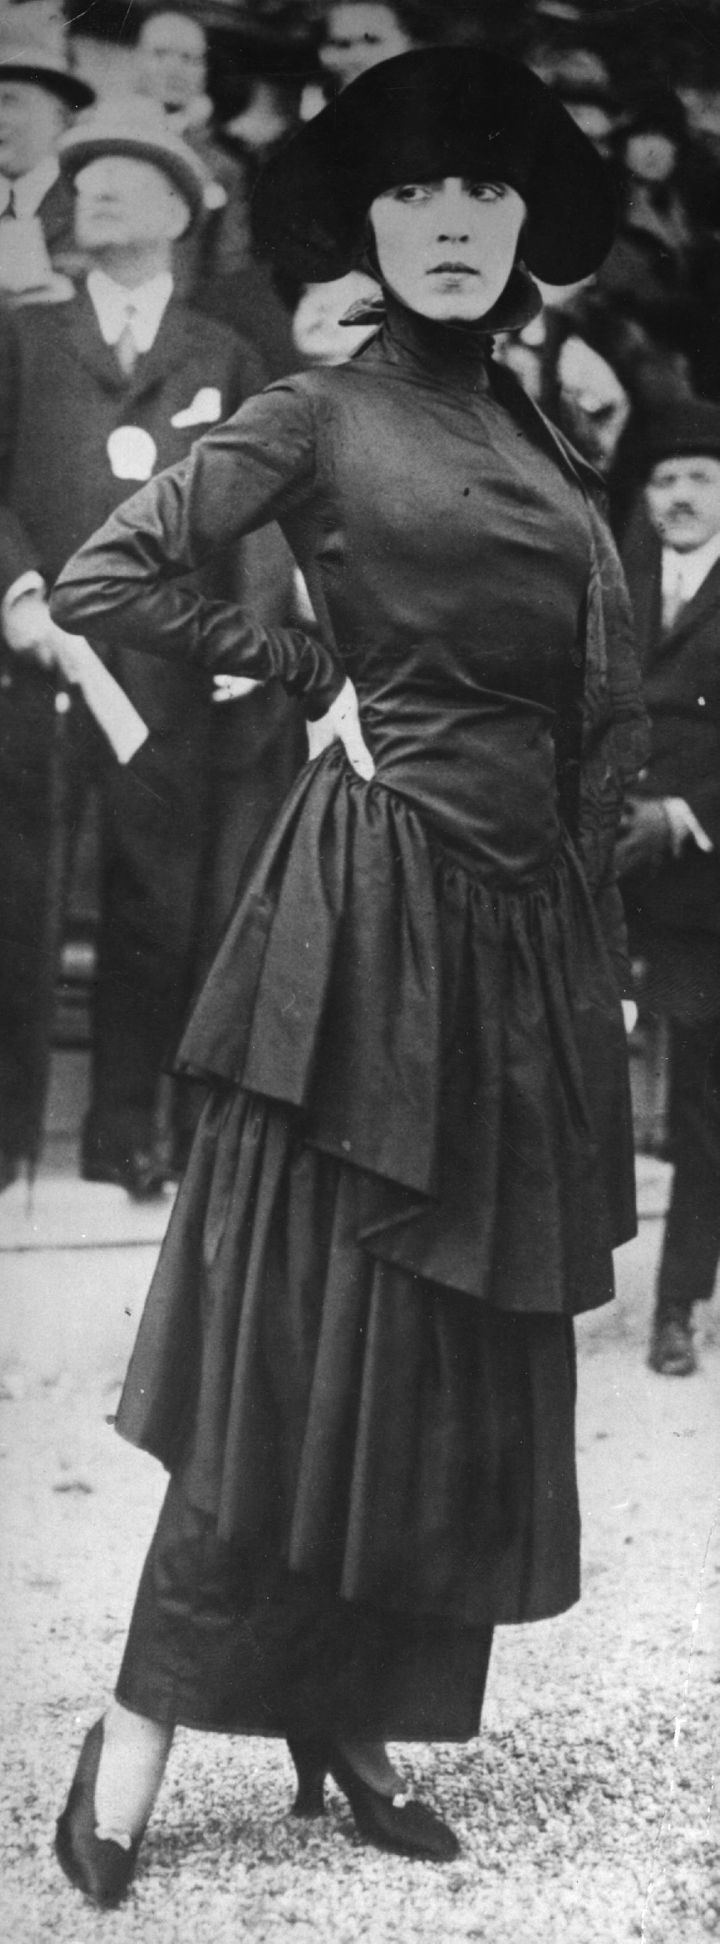 A Poiret model wearing a dress of black marocain with a severe neckline and flounced hobble skirt.